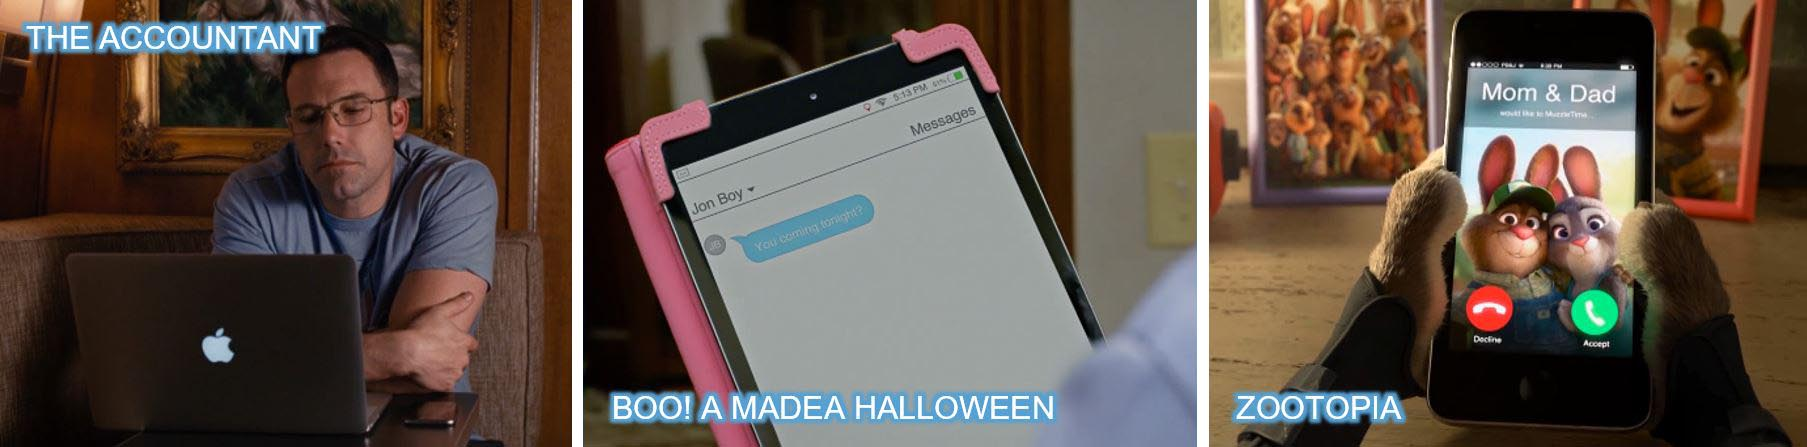 Apple laptop tablet ipad the accountant boo a madea halloween zootopia concave brand tracking 2016 top 10 Brands product placement